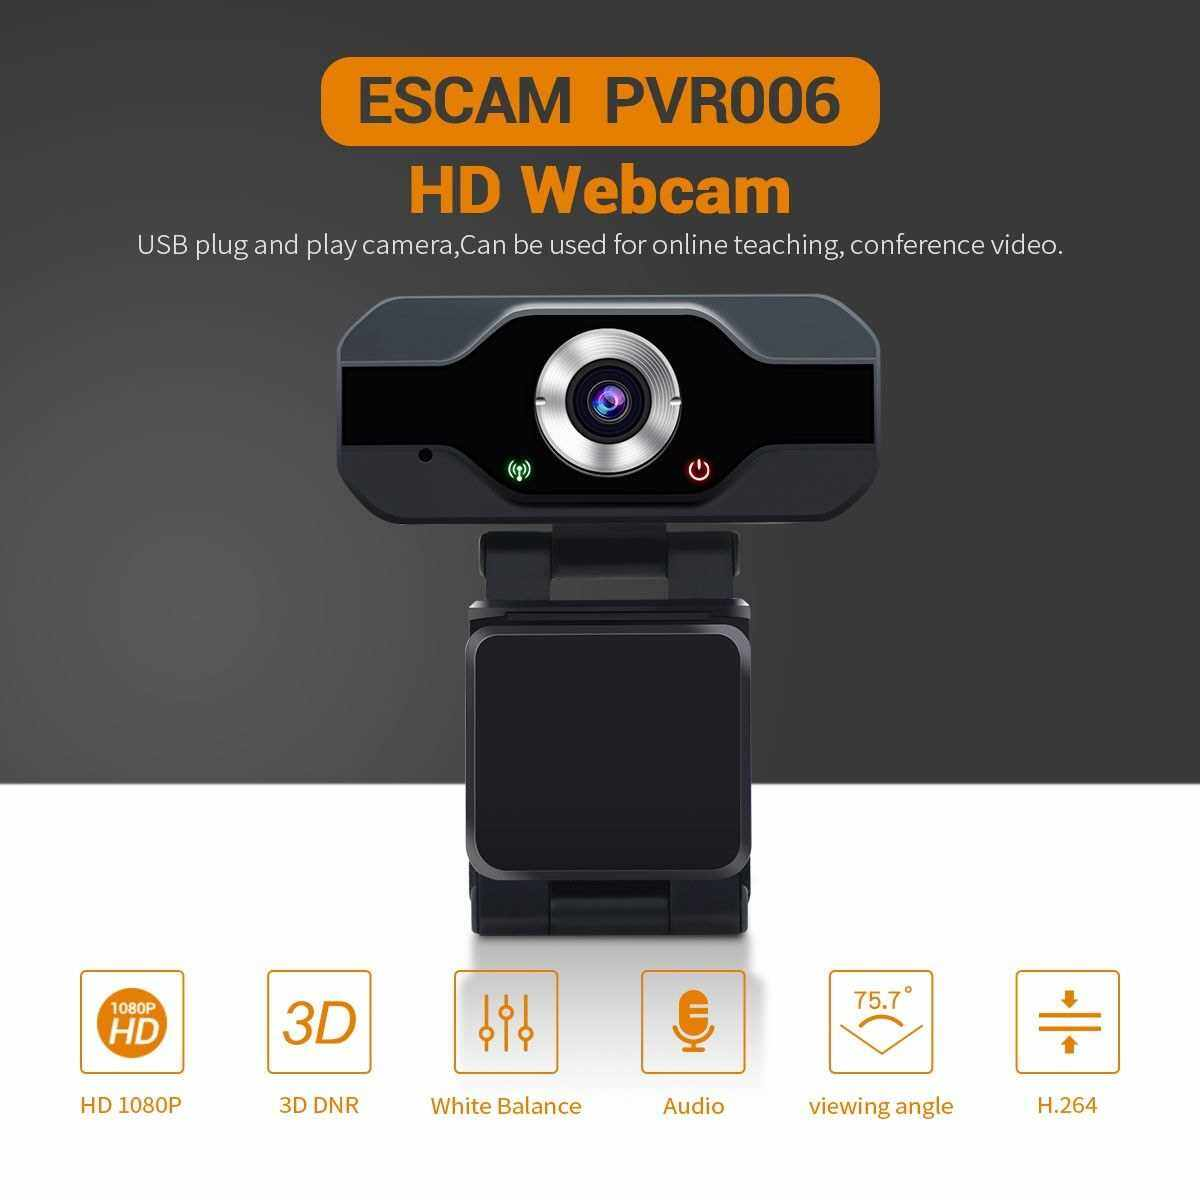 1080P HD Webcam with Microphone PC Laptop Desktop USB Computer Camera for Live Streaming Video Calling, Online Teaching, Conferencing Video, Gaming.Web Camera with Rotatable Clip (Standard)